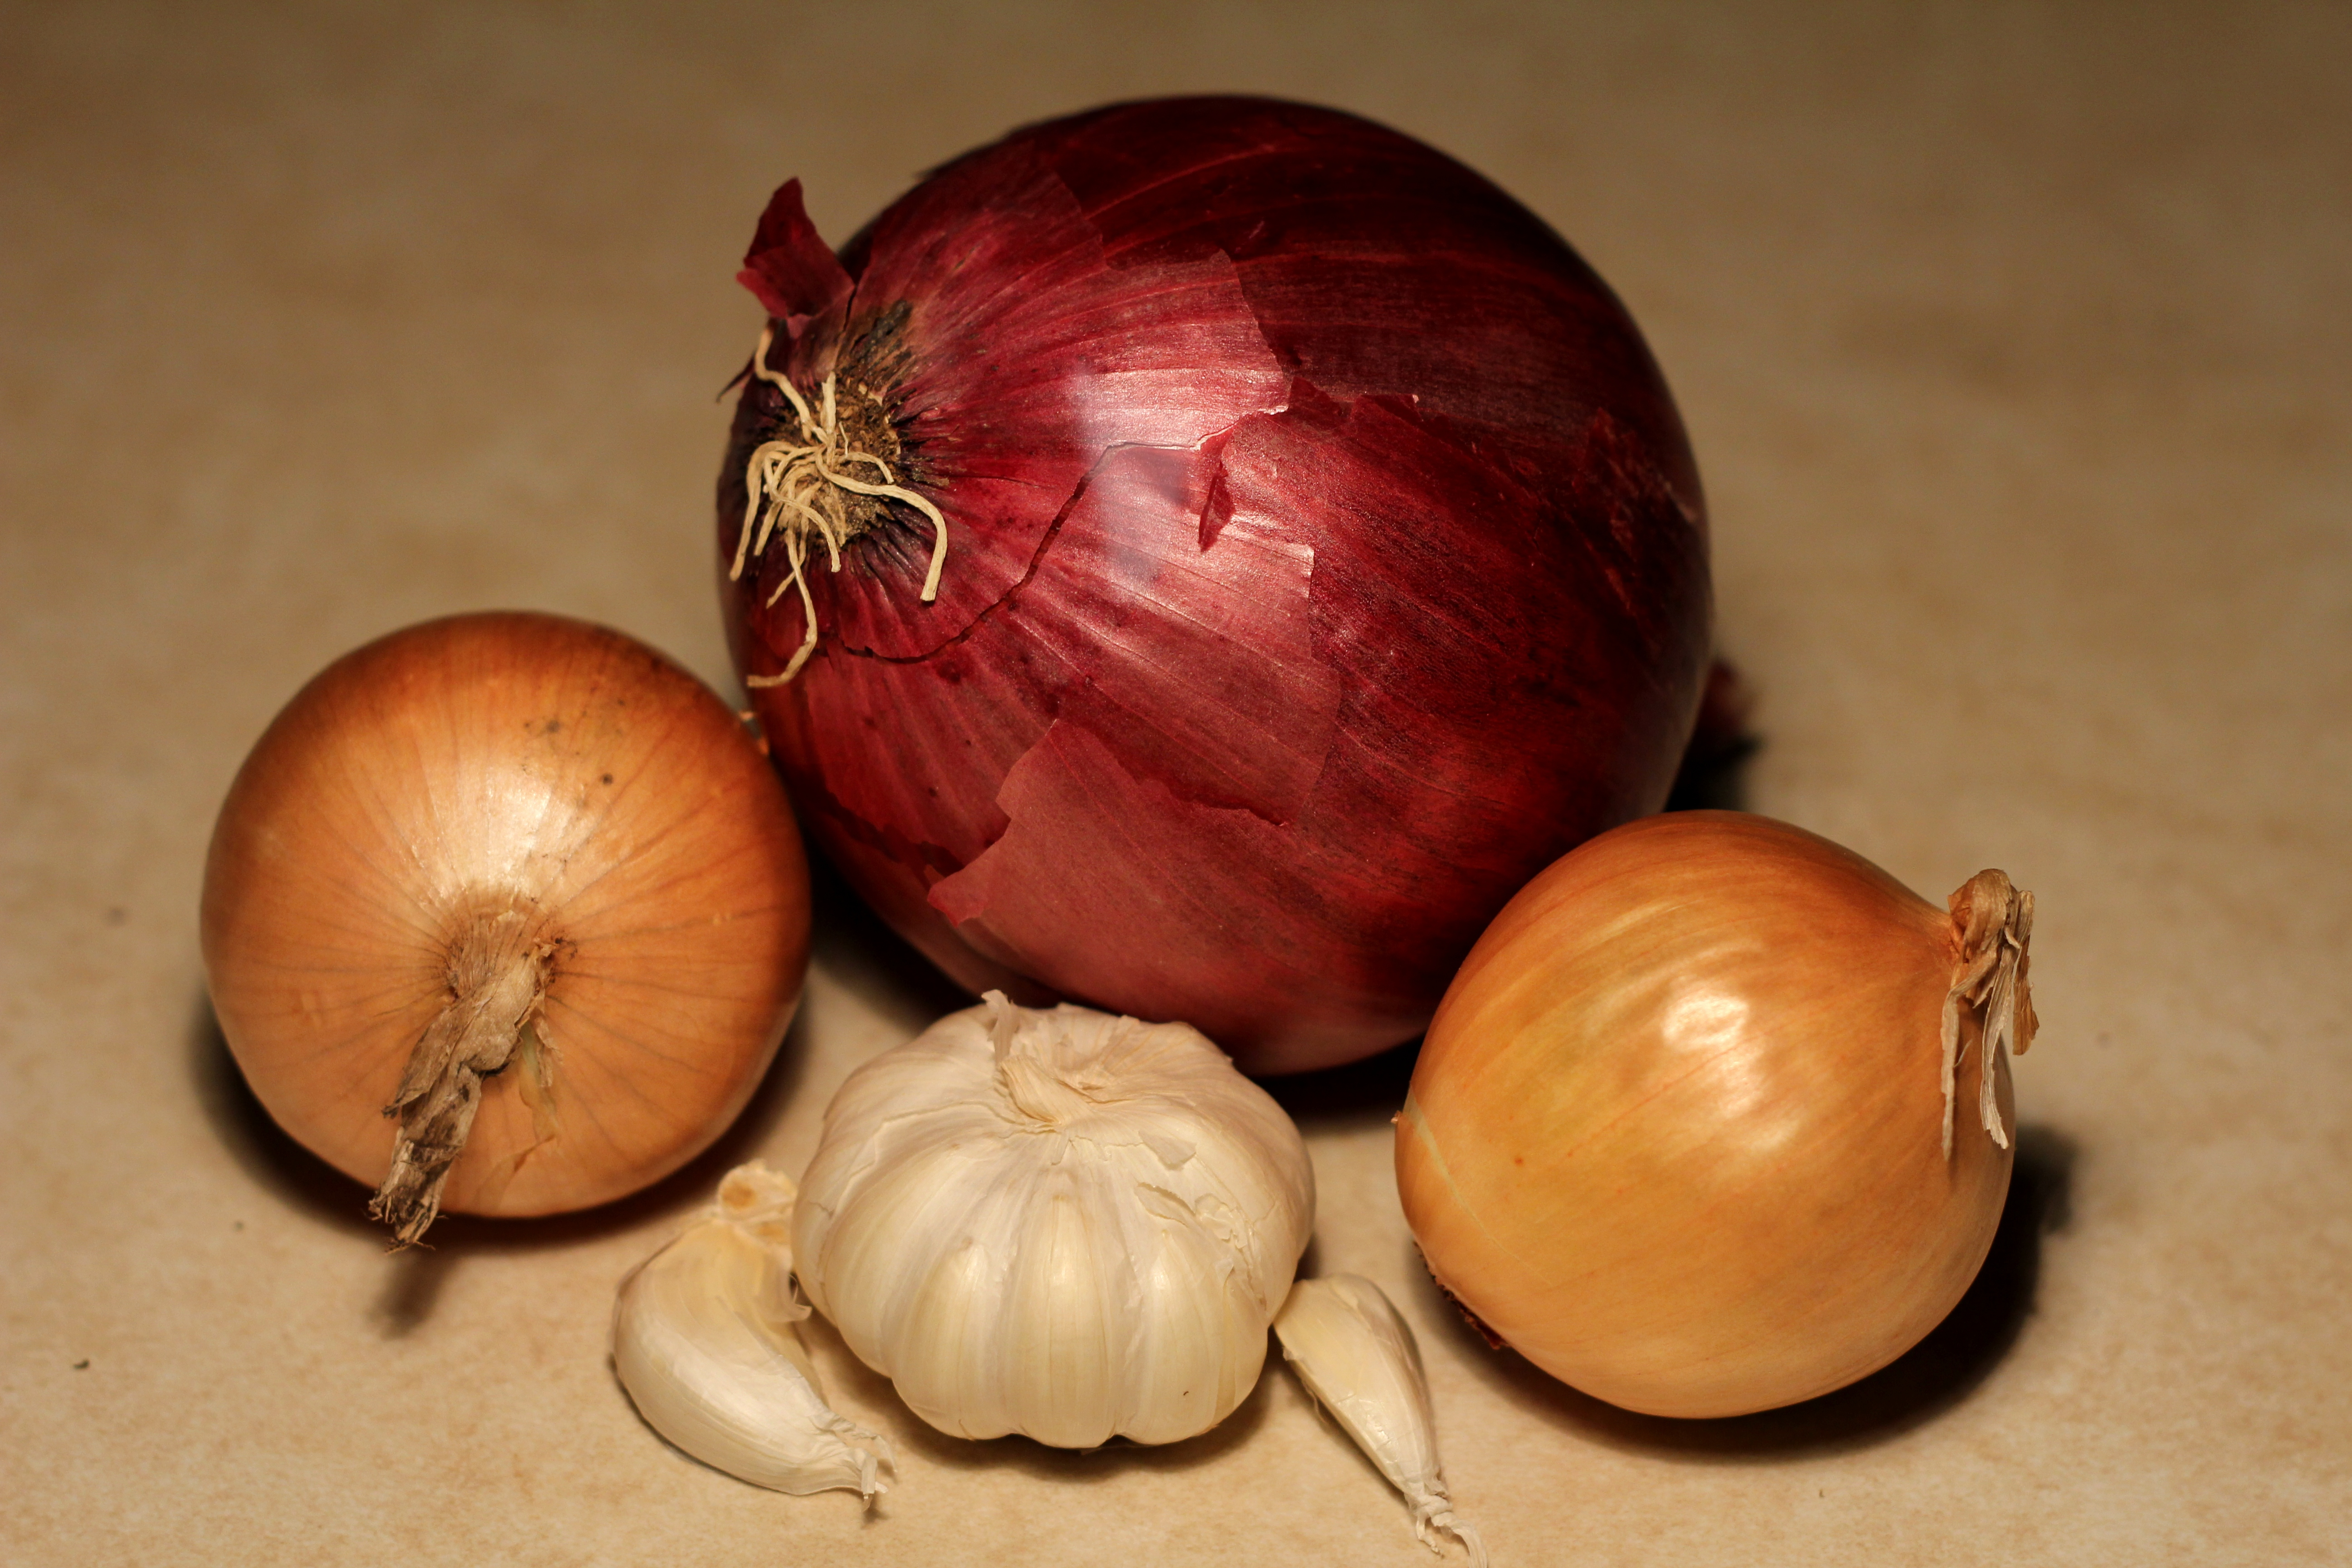 Red & brown onions & garlic bulb